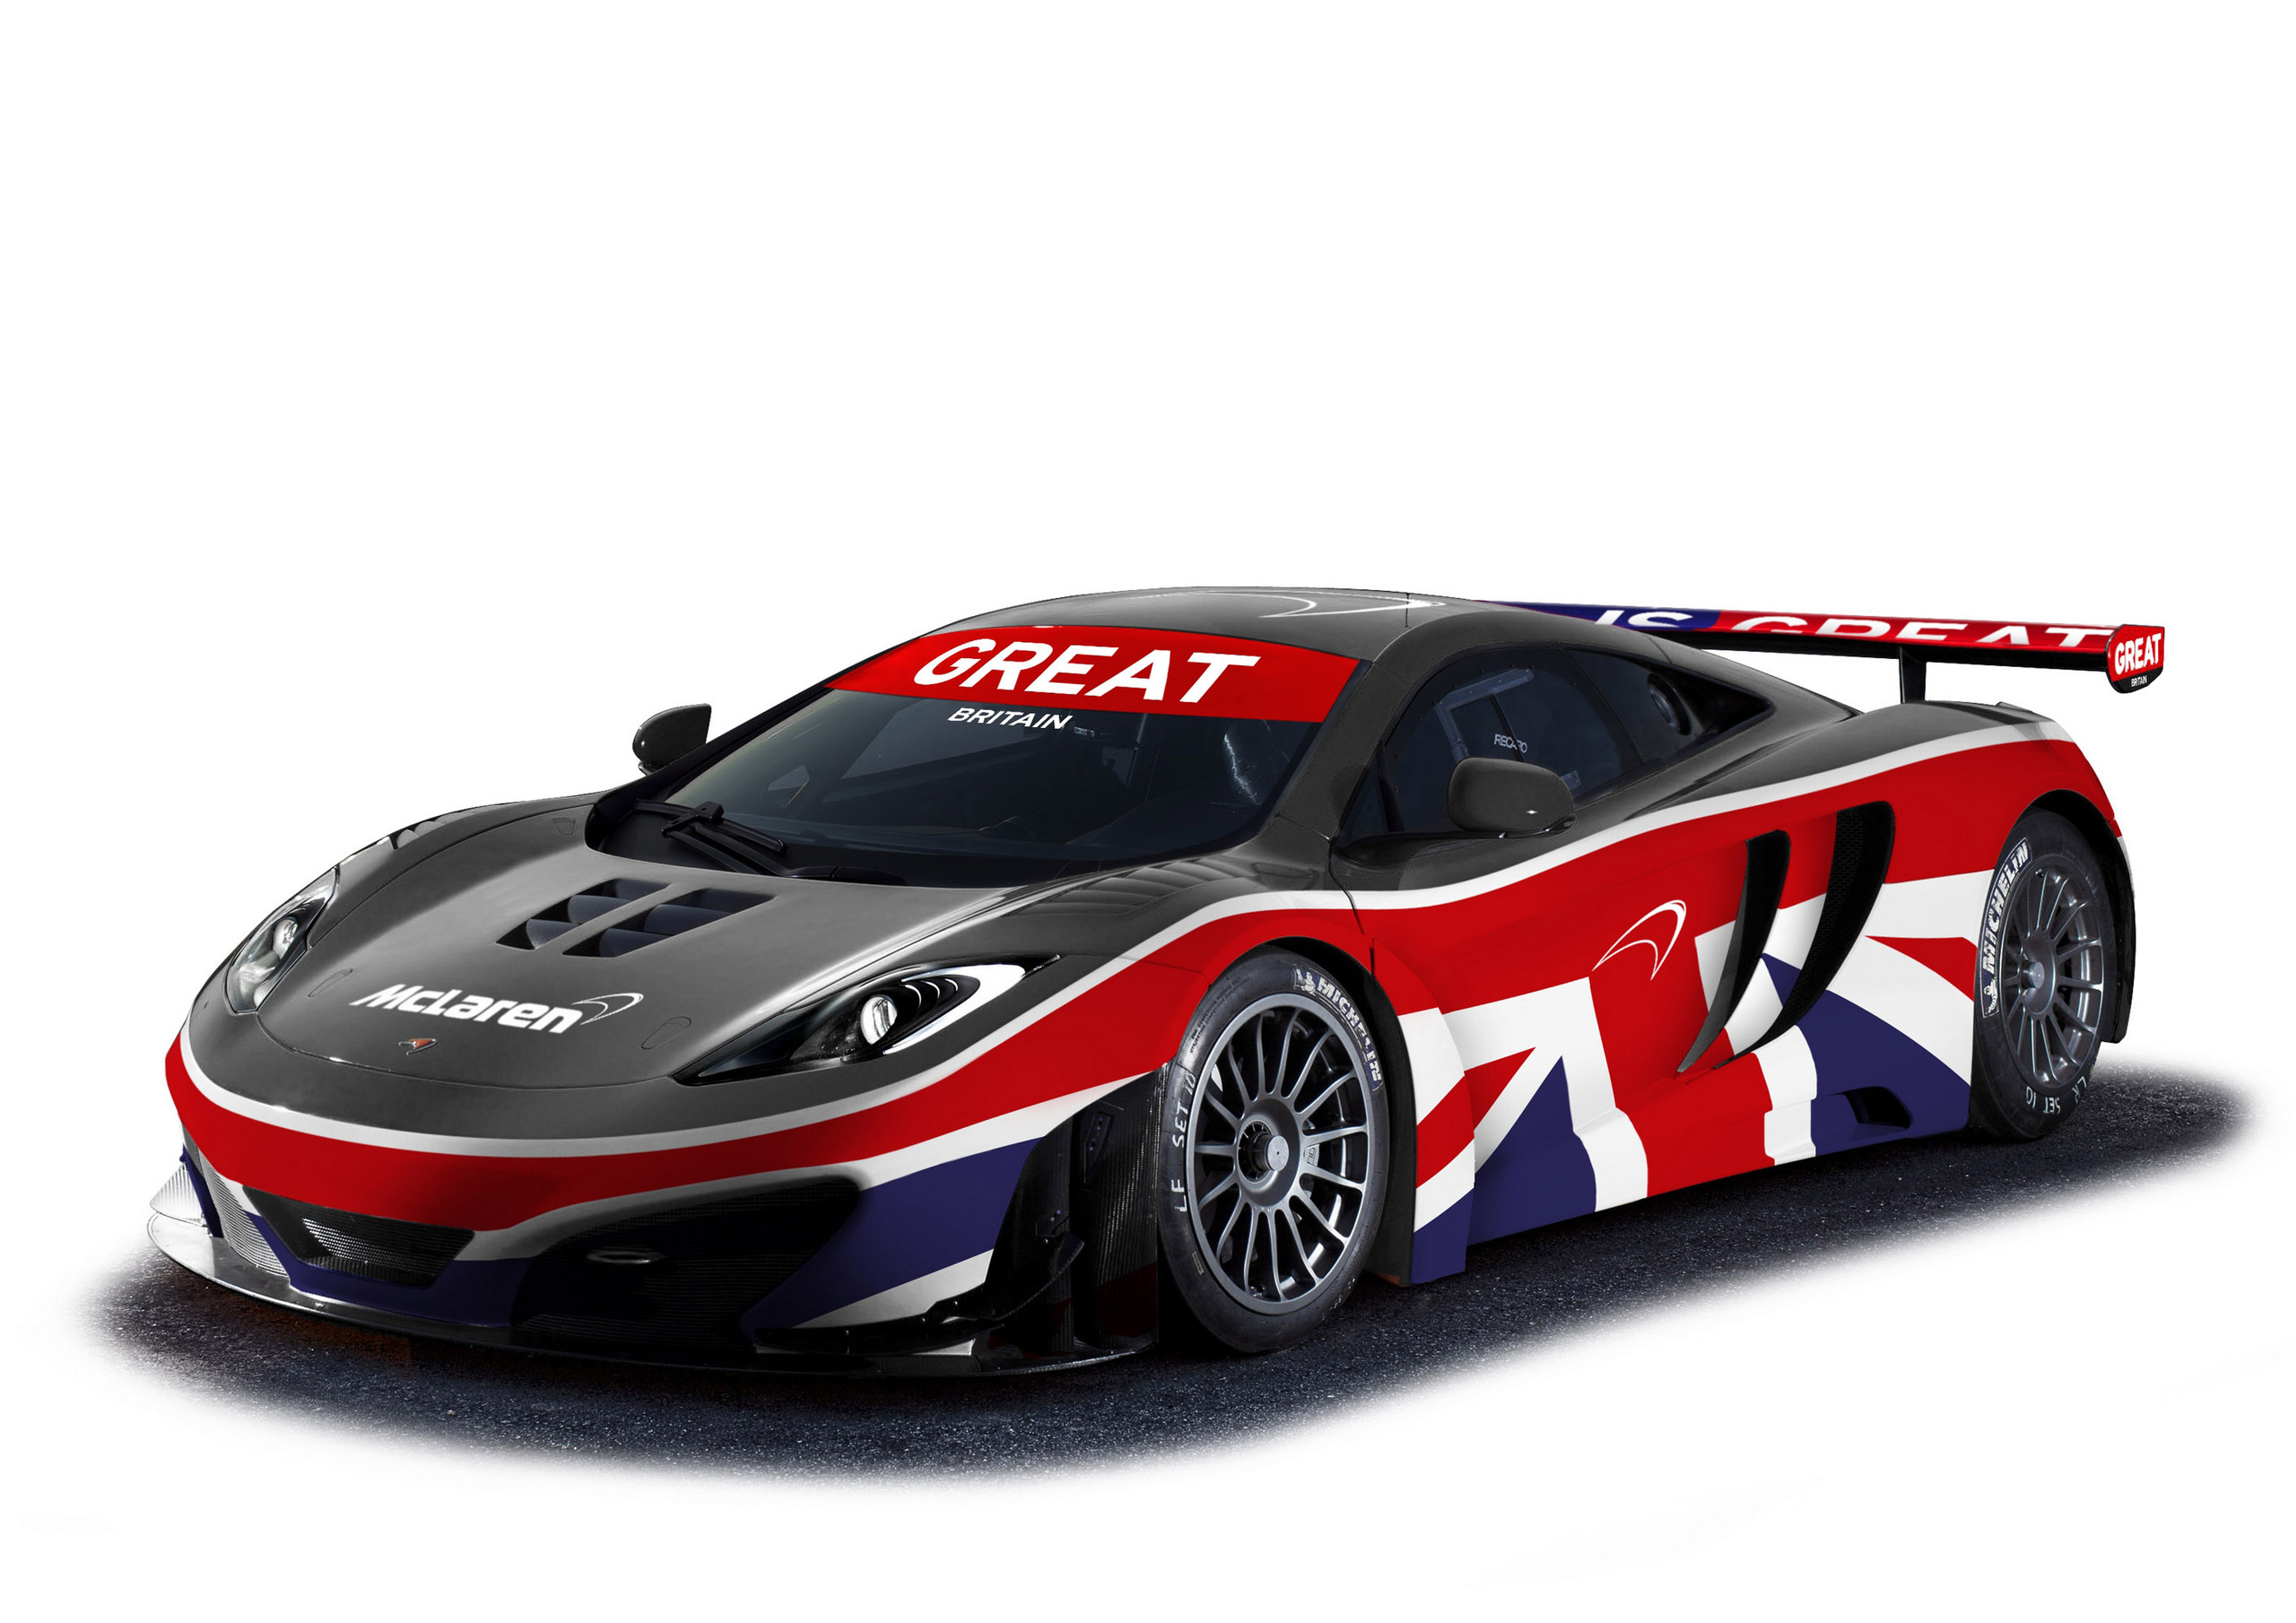 Mclaren Mp4 12c Gt3 Sports Cars Photo 31364008 Fanpop